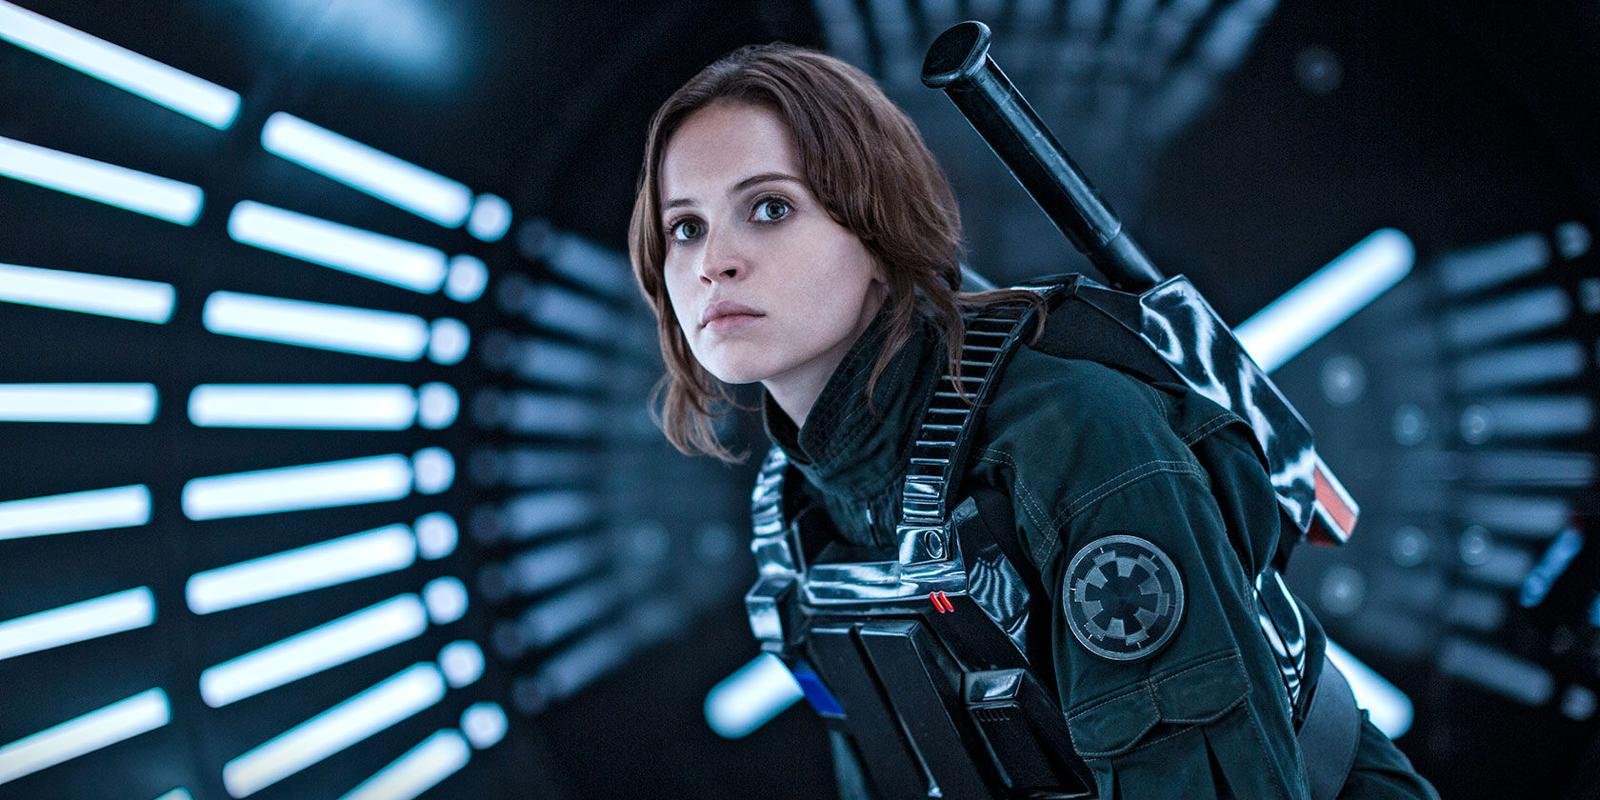 Rogue One Felicity Jones Jyn Erso Could Appear In A